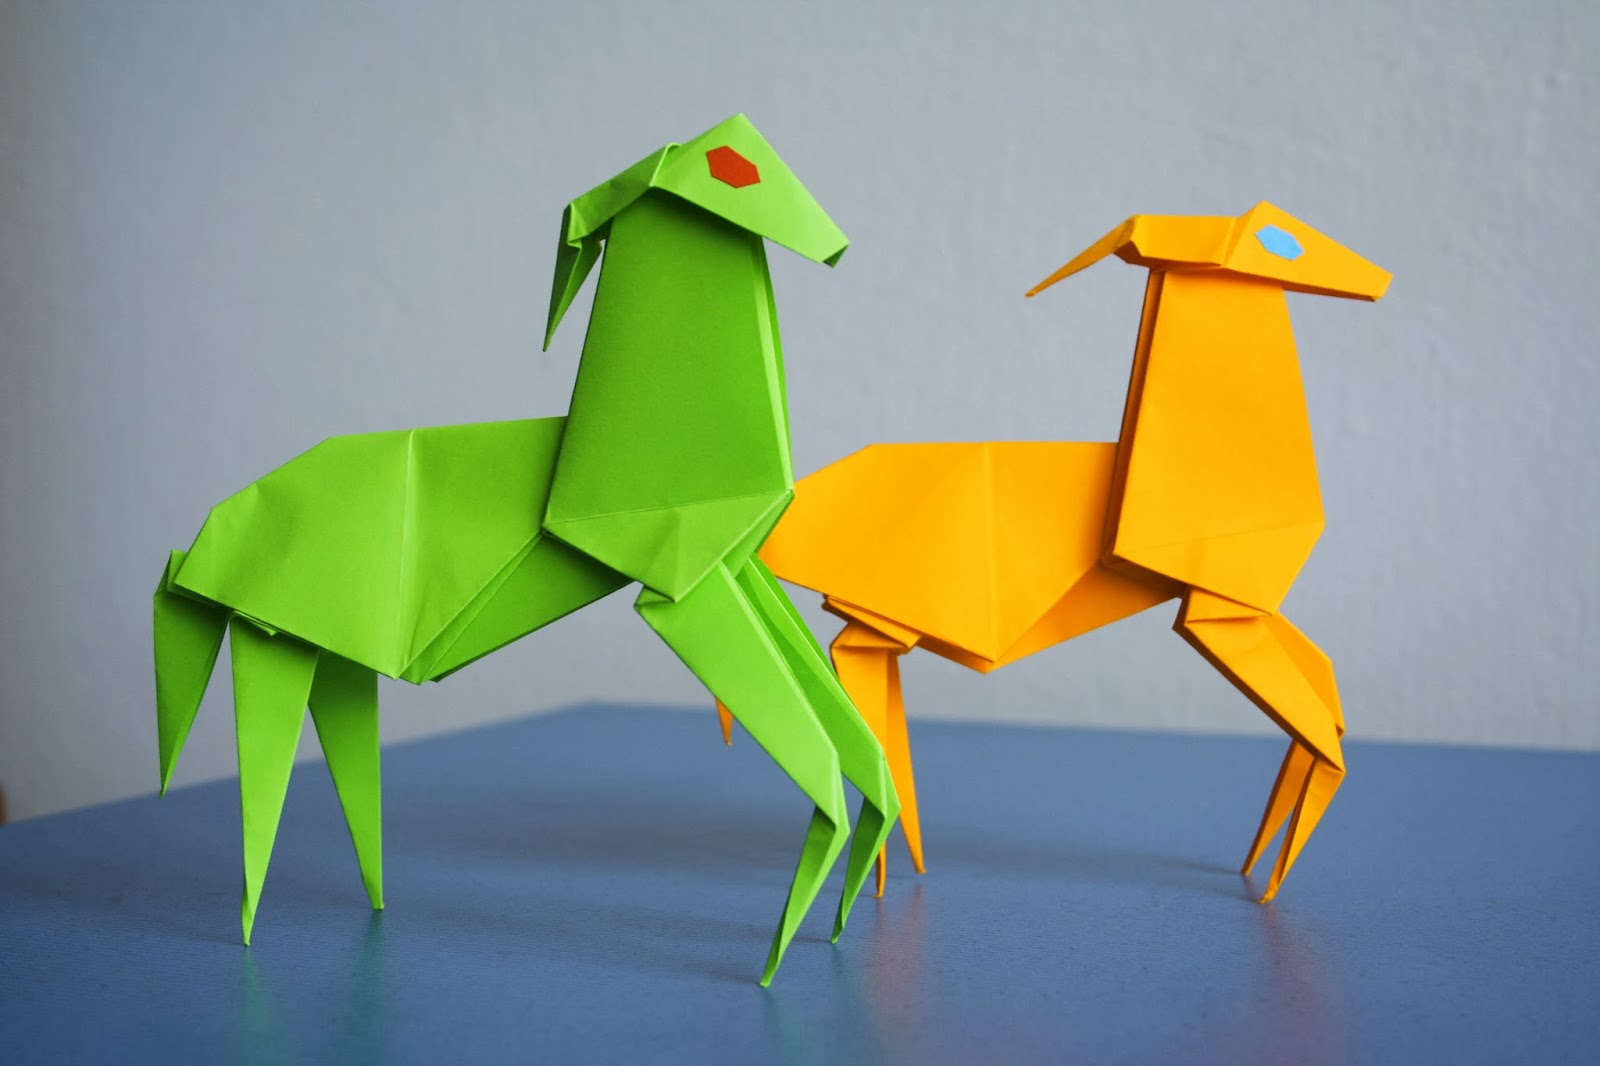 Origami : Amazing Art Of Paper Folding | Most Unbelievable ... - photo#1